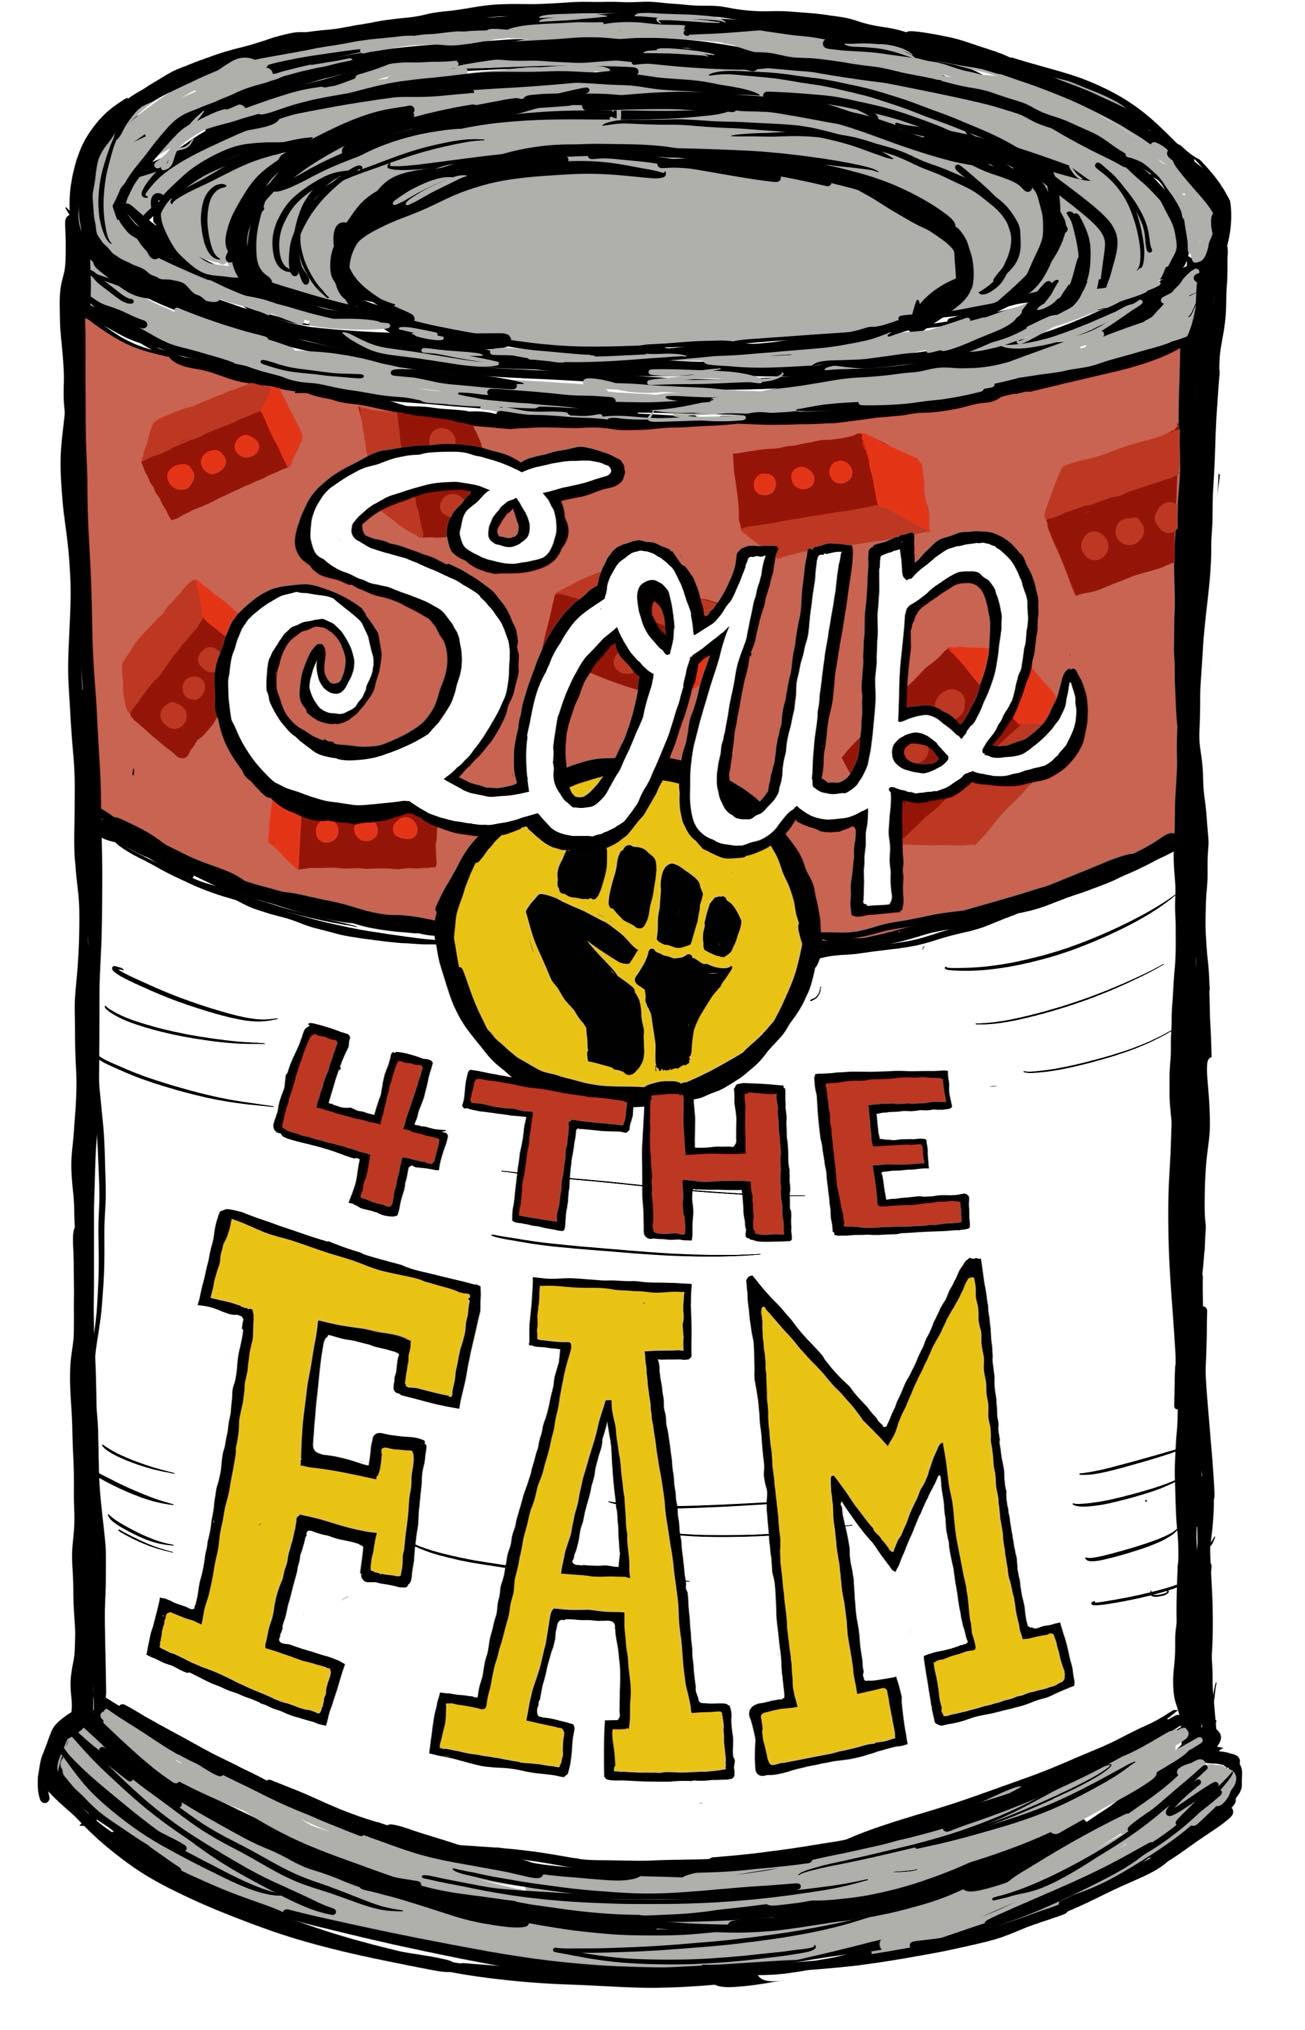 """a drawing of a can of soup in a Campbells andy Warhol style labeled """"Soup 4 The Fam"""" emblazened with a black power fist"""